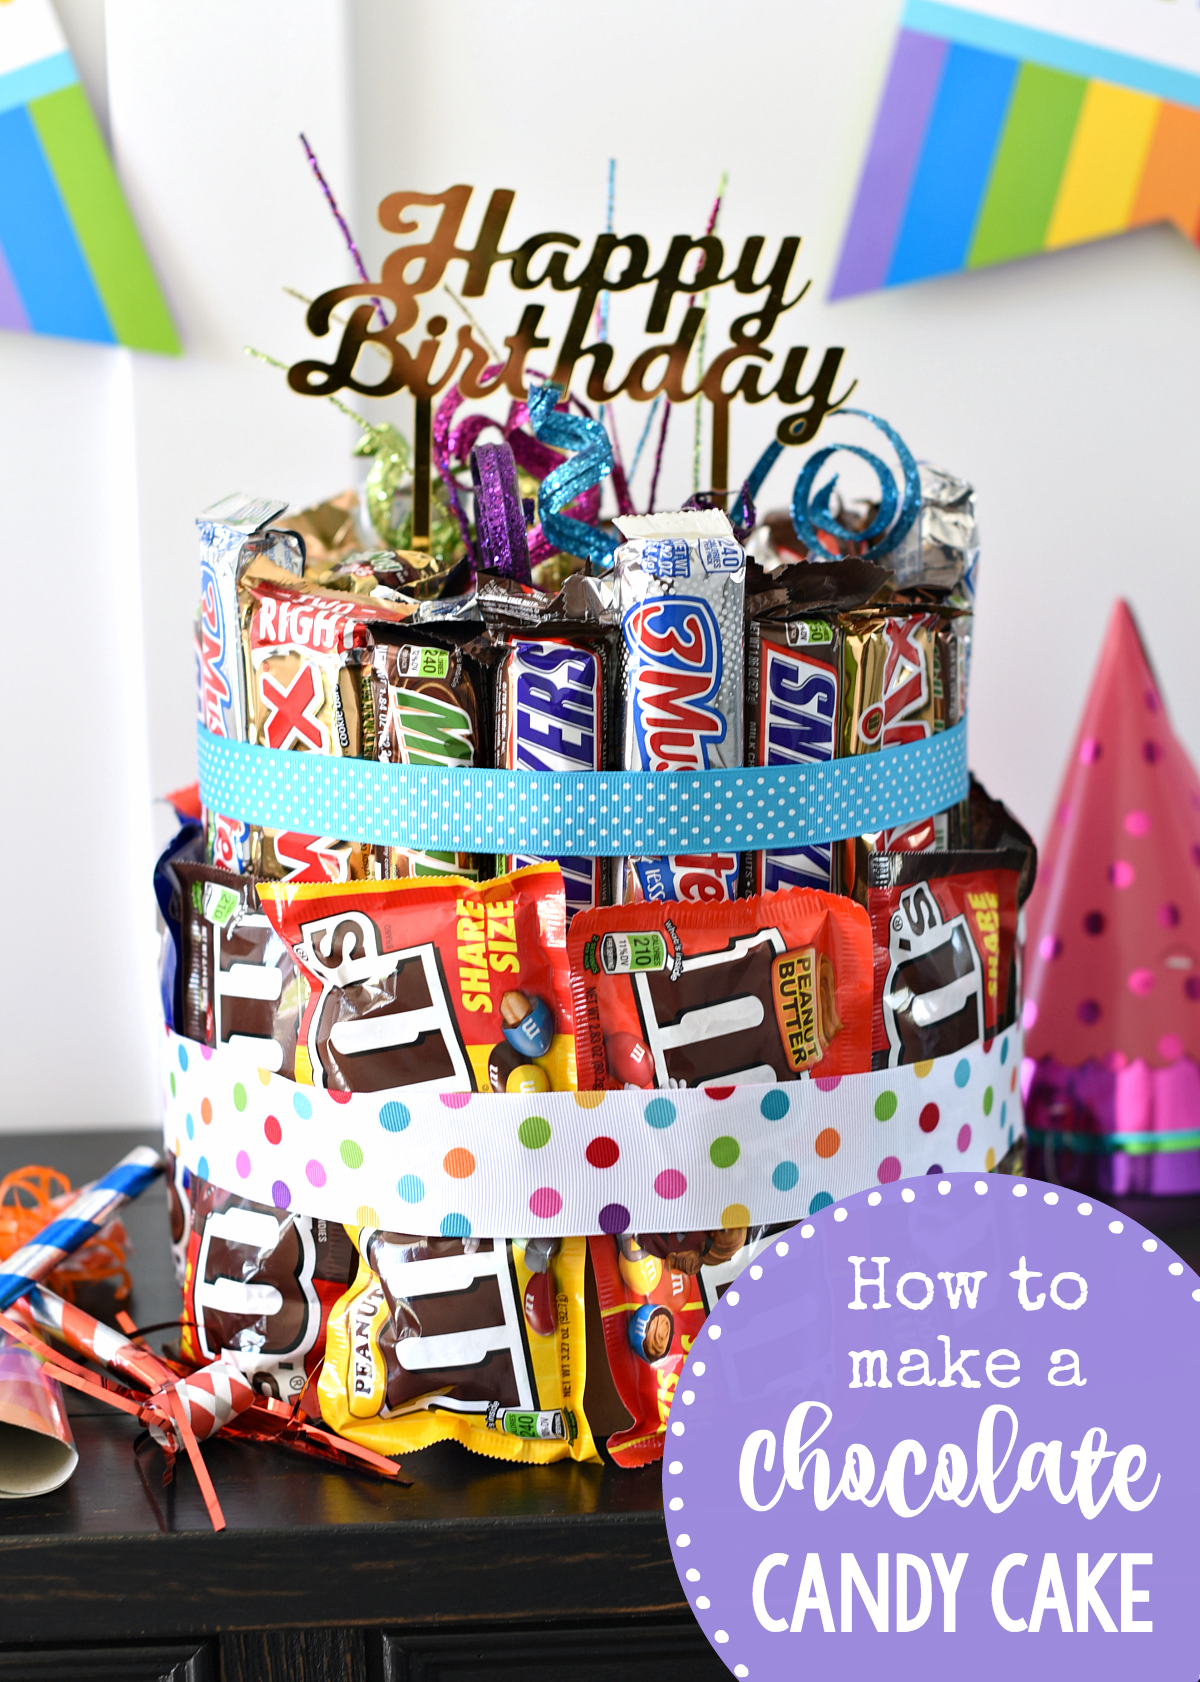 How to Make a Chocolate Candy Cake-This is the best birthday gift ever for someone who loves chocolate! #chocolate #birthday #gifts